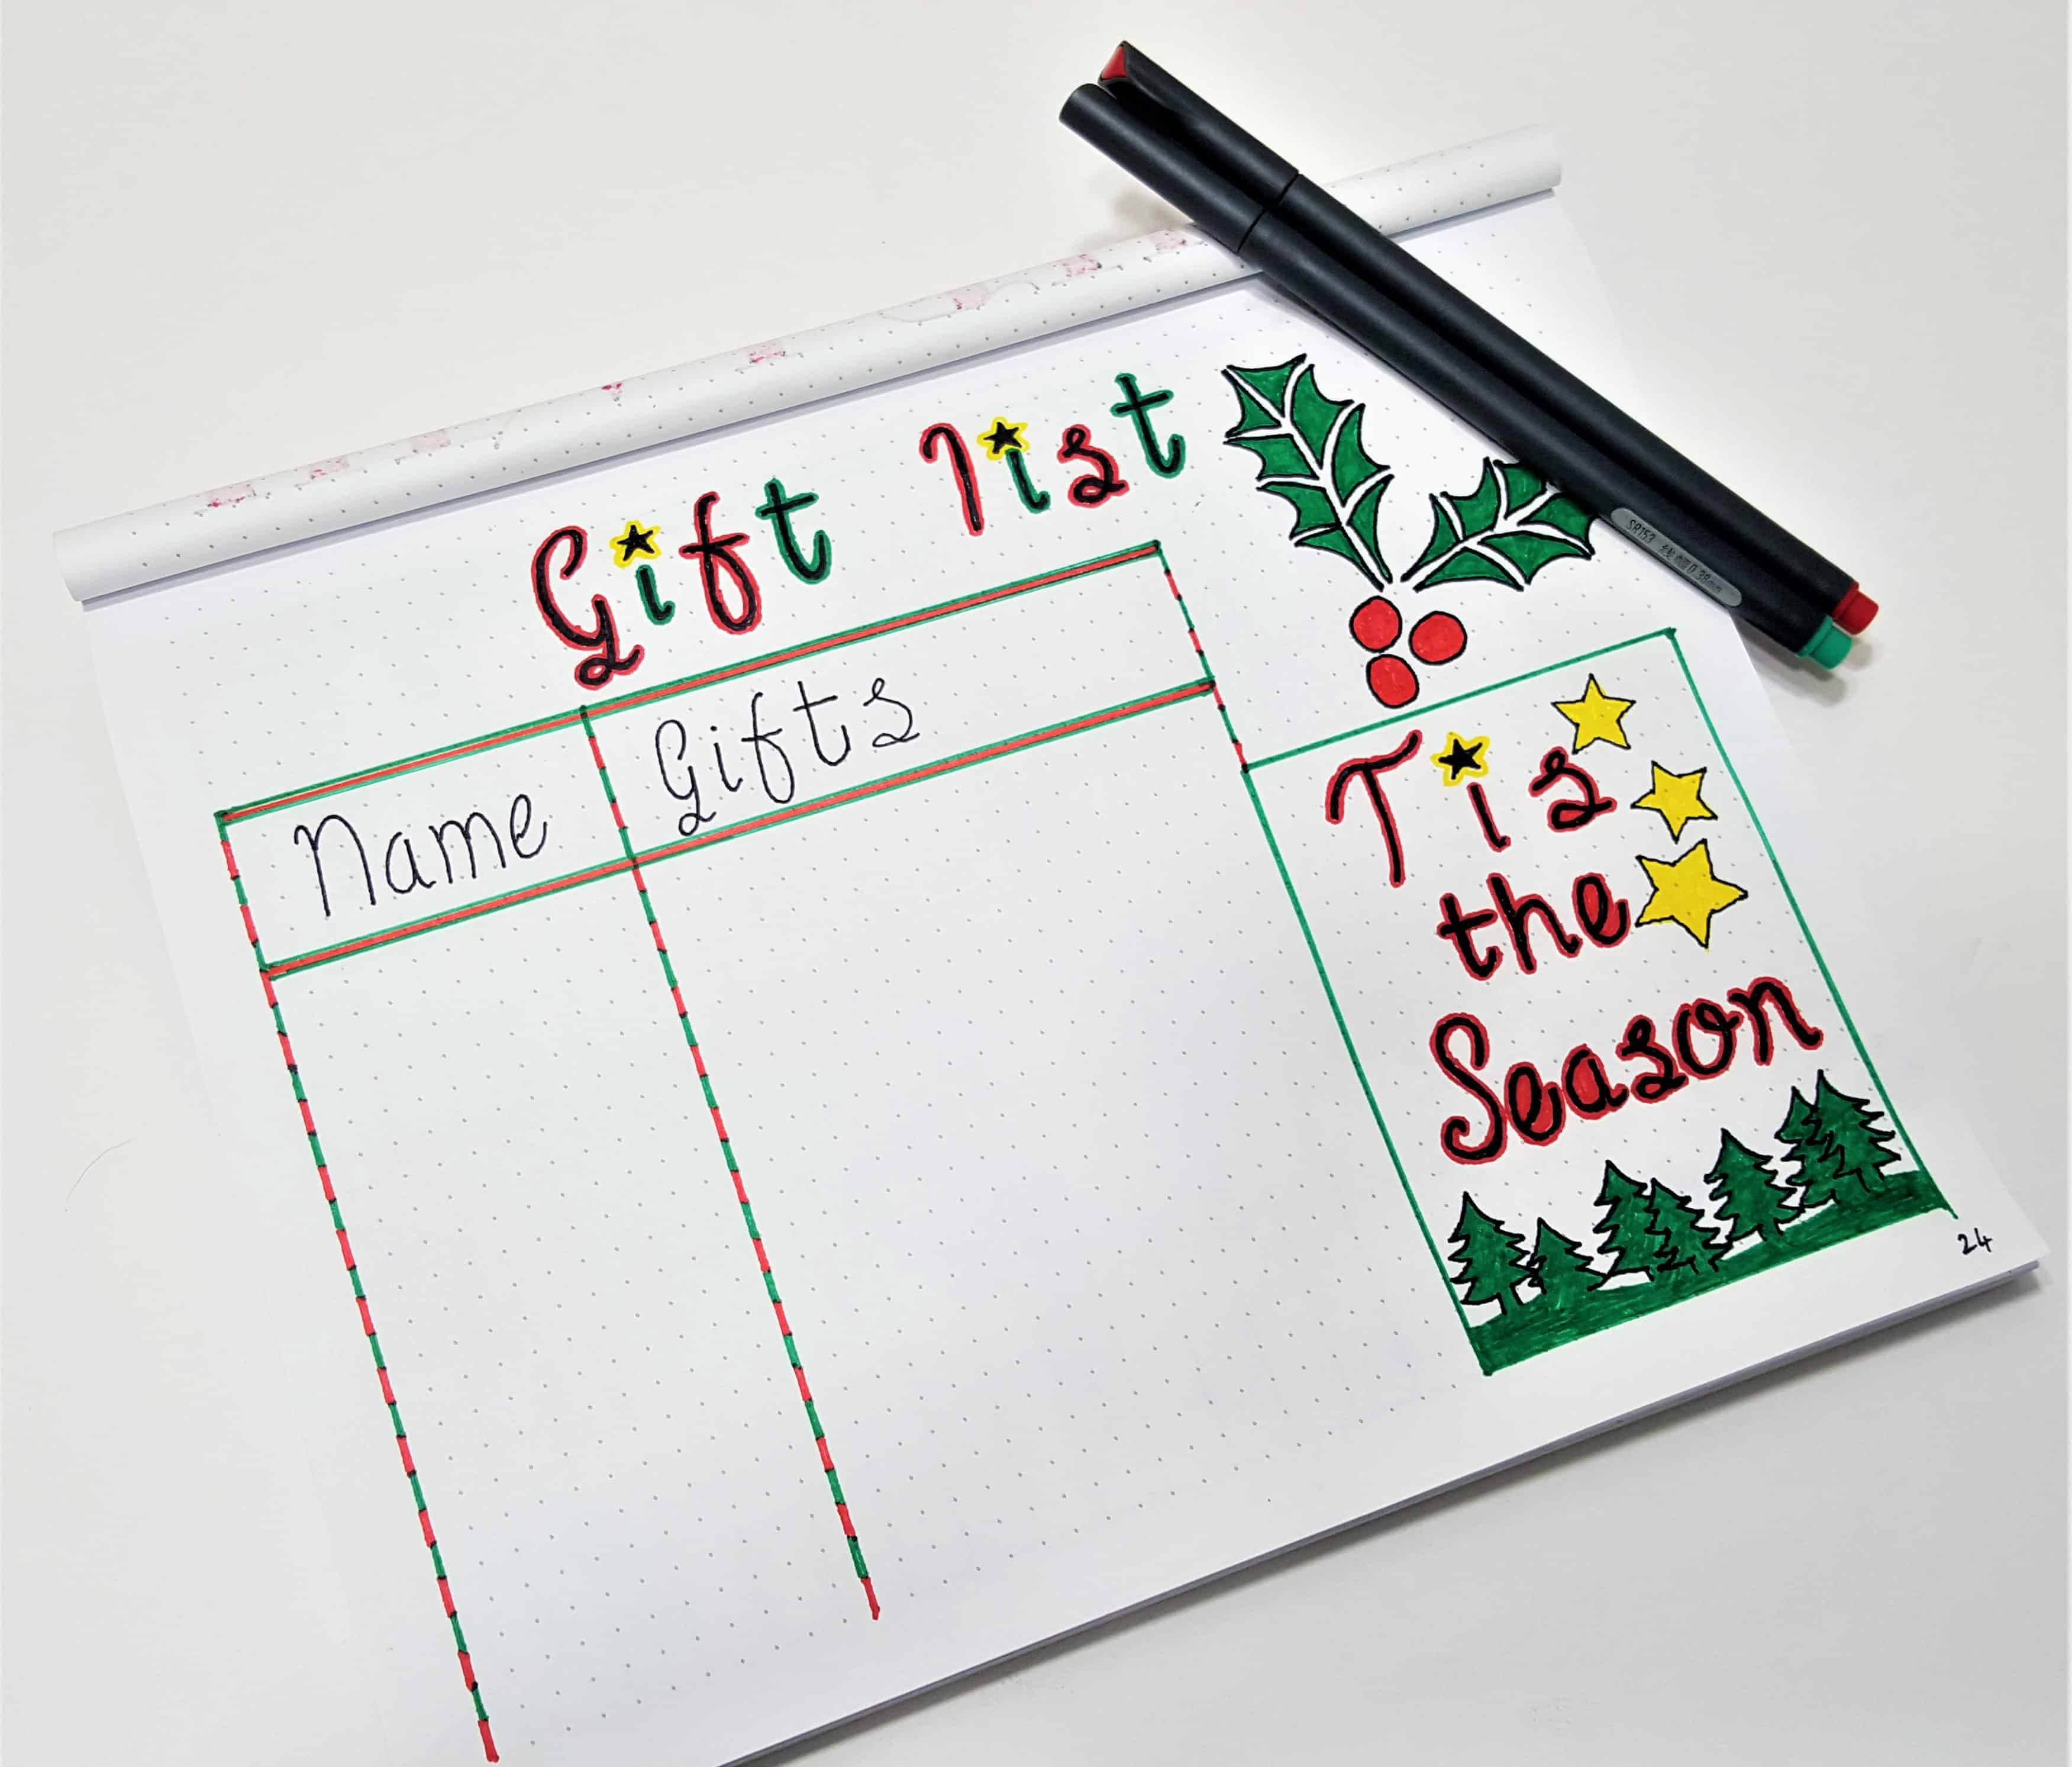 Bullet Journal Ideas to Make Life Easier - Christmas Bullet Journal | Getting ready for December and the Holiday Season with these useful Christmas BuJo spreads! Keep organized and stay sane this holiday season with Bullet Journals!